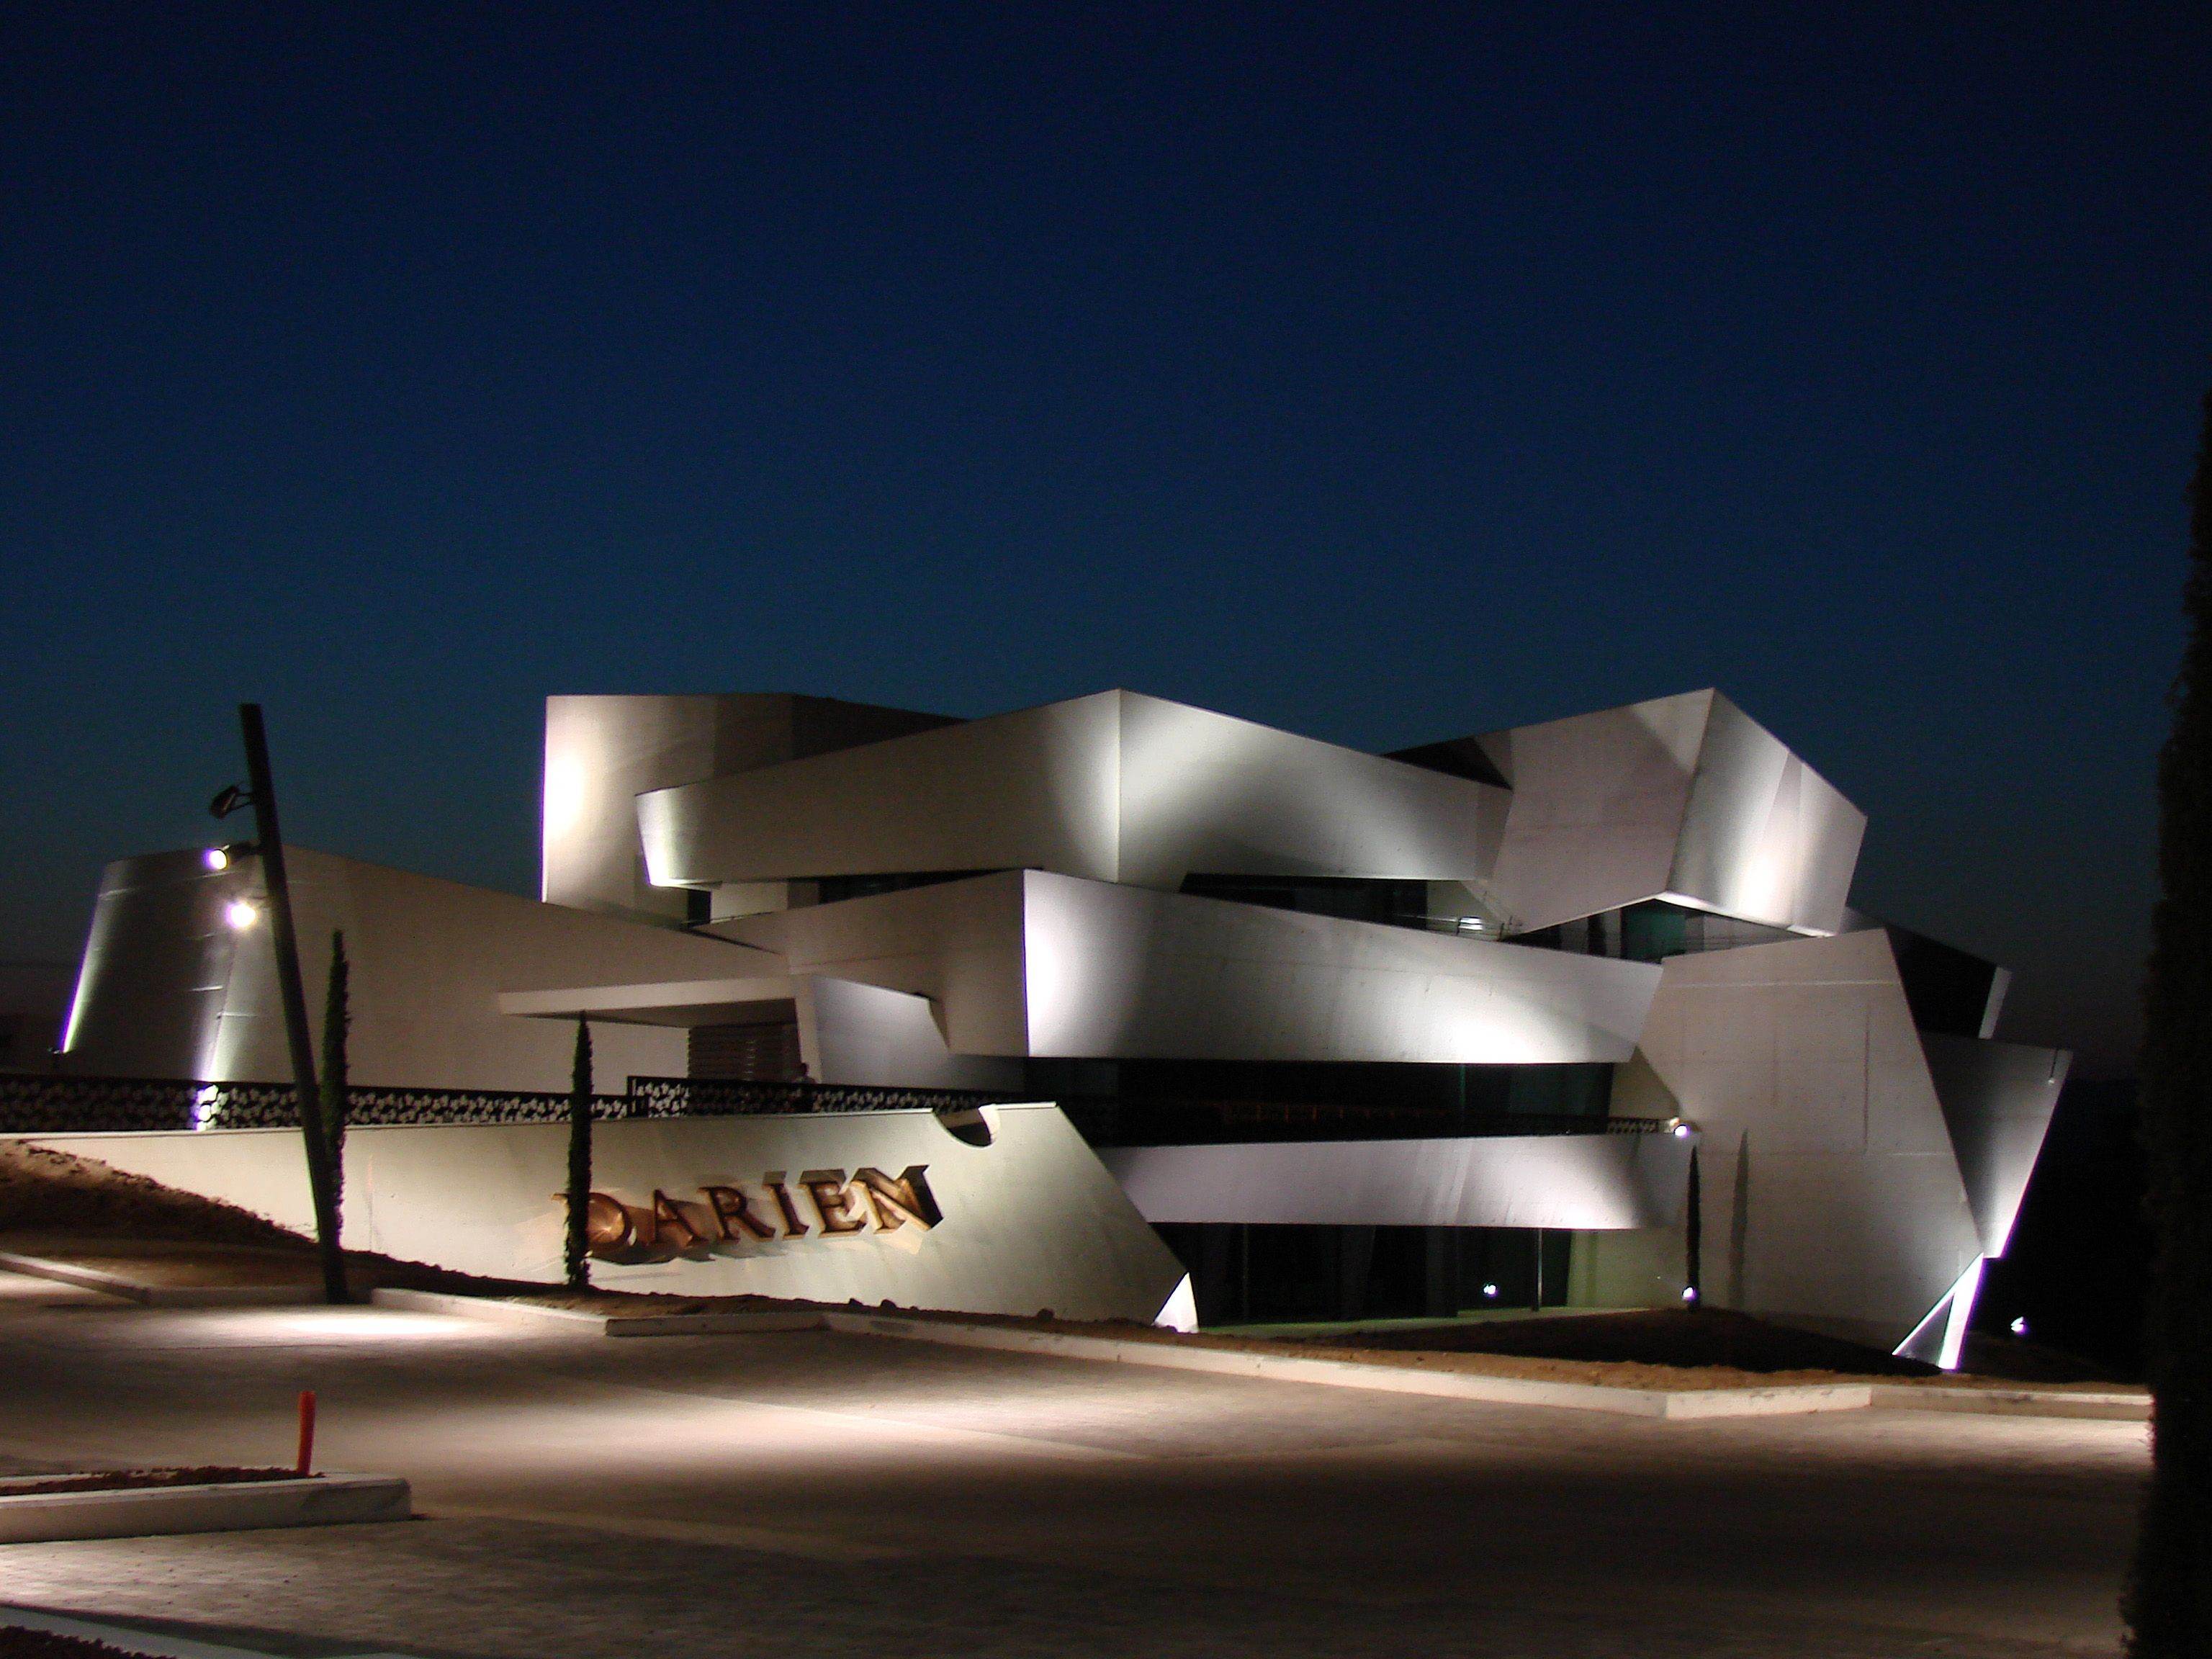 Bodegas Darien in Logroño (Rioja, Spain) designed by J. Marino Pascual #wine #architecture